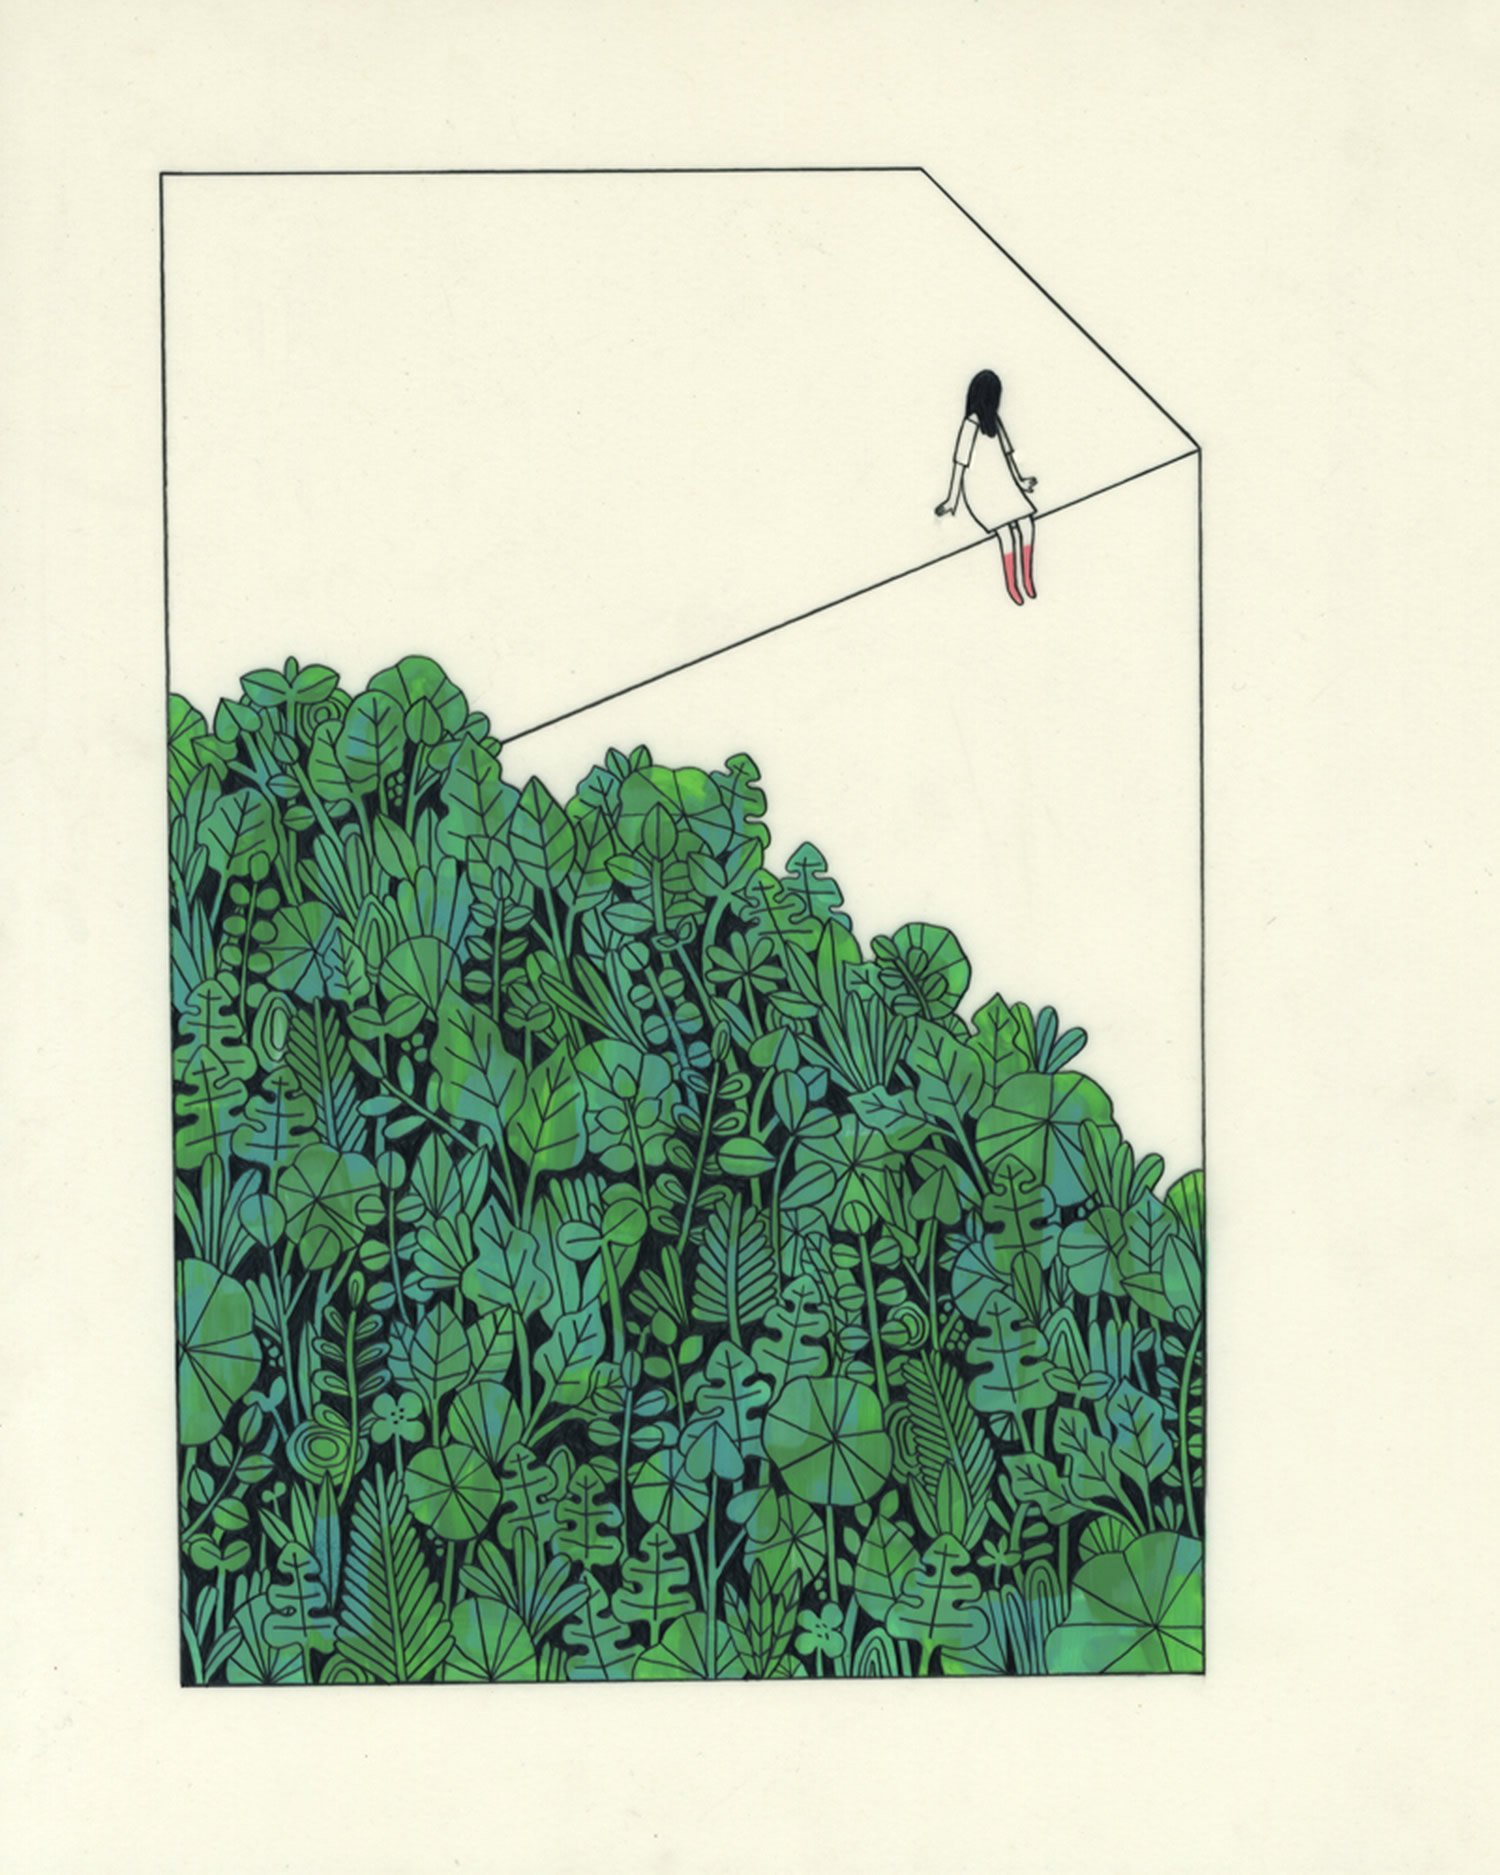 girl on rope, plants, illustration